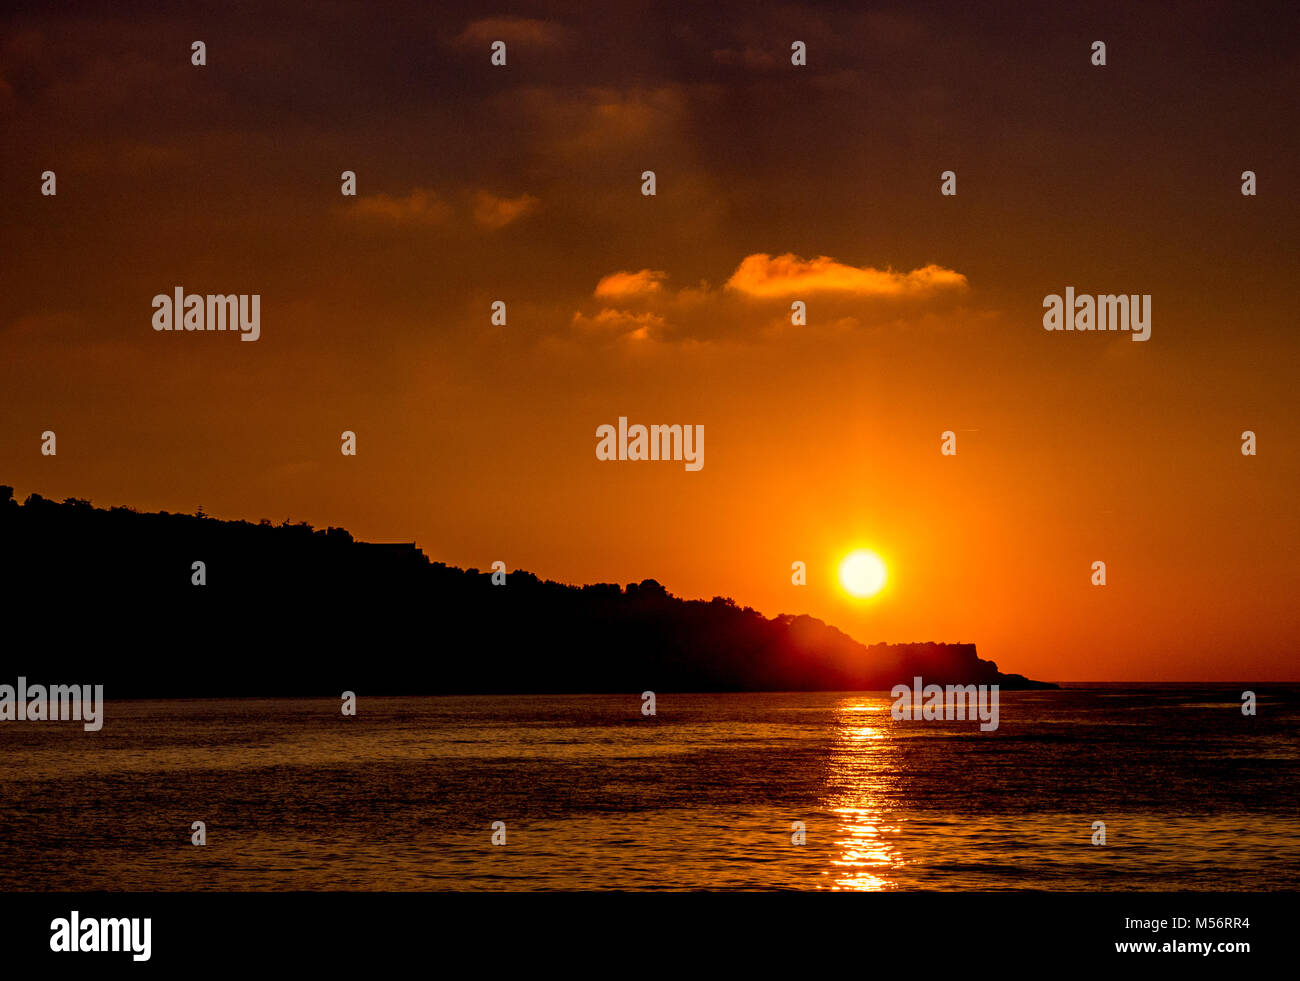 Sunset over the Sorrento Peninsula, Bay of Naples, Italy. - Stock Image